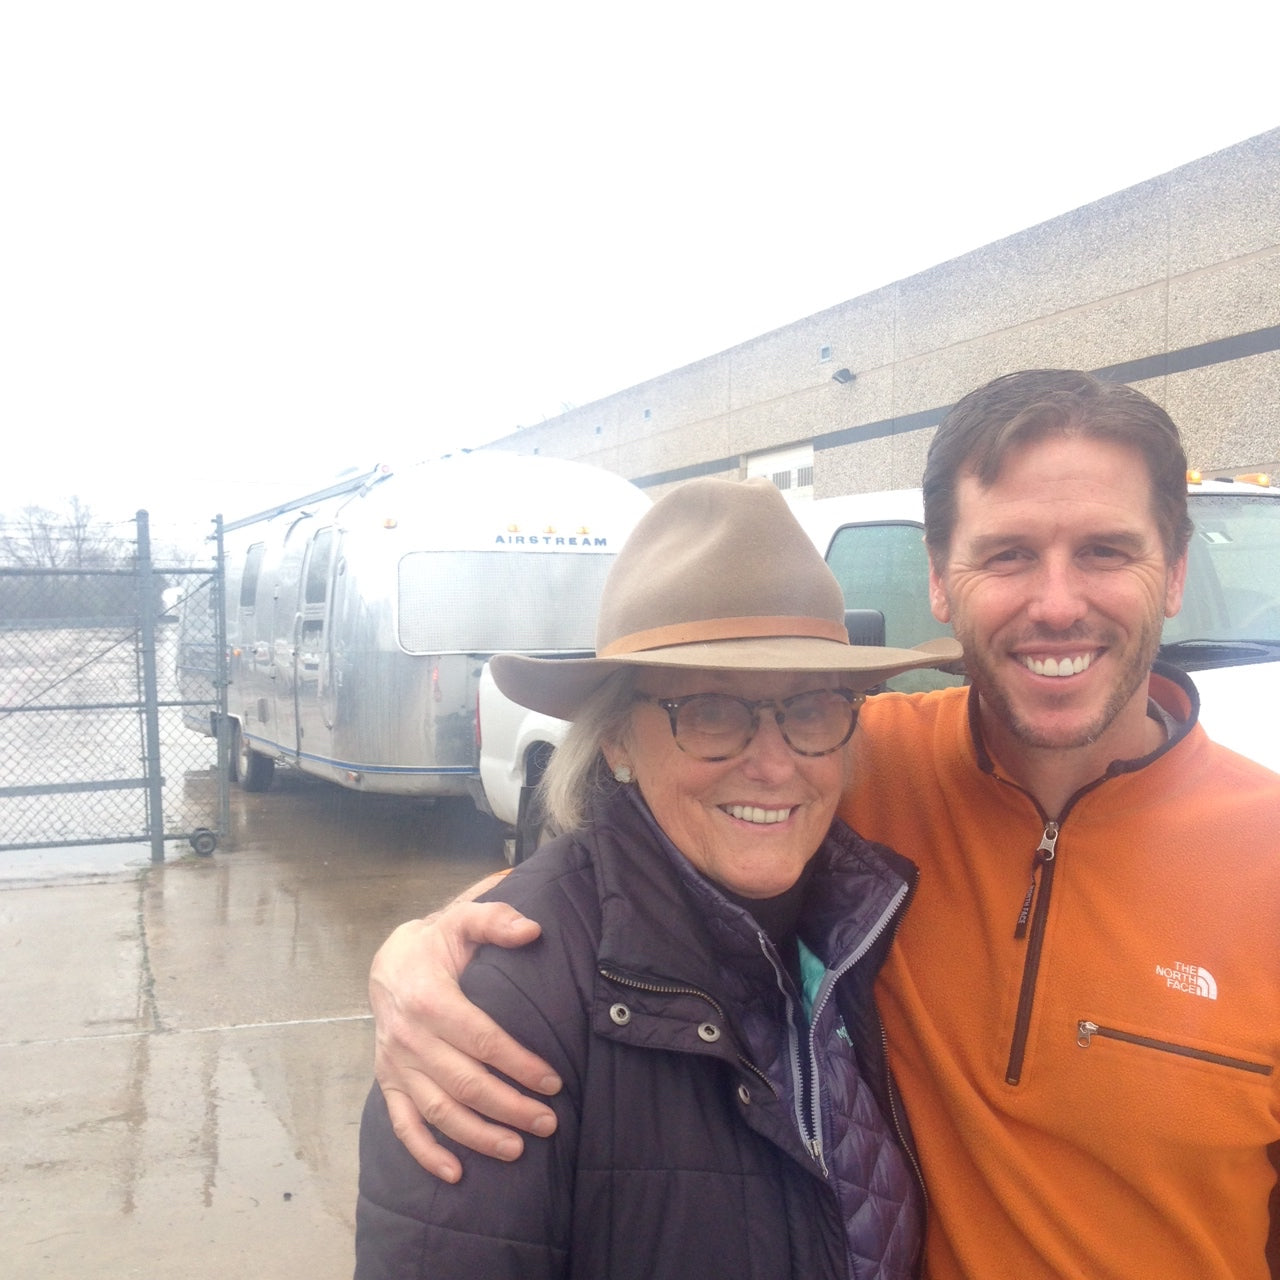 Mary Ella Gabler and Josh Needleman pose in front of the Steel Magnolia Airstream on a rainy day